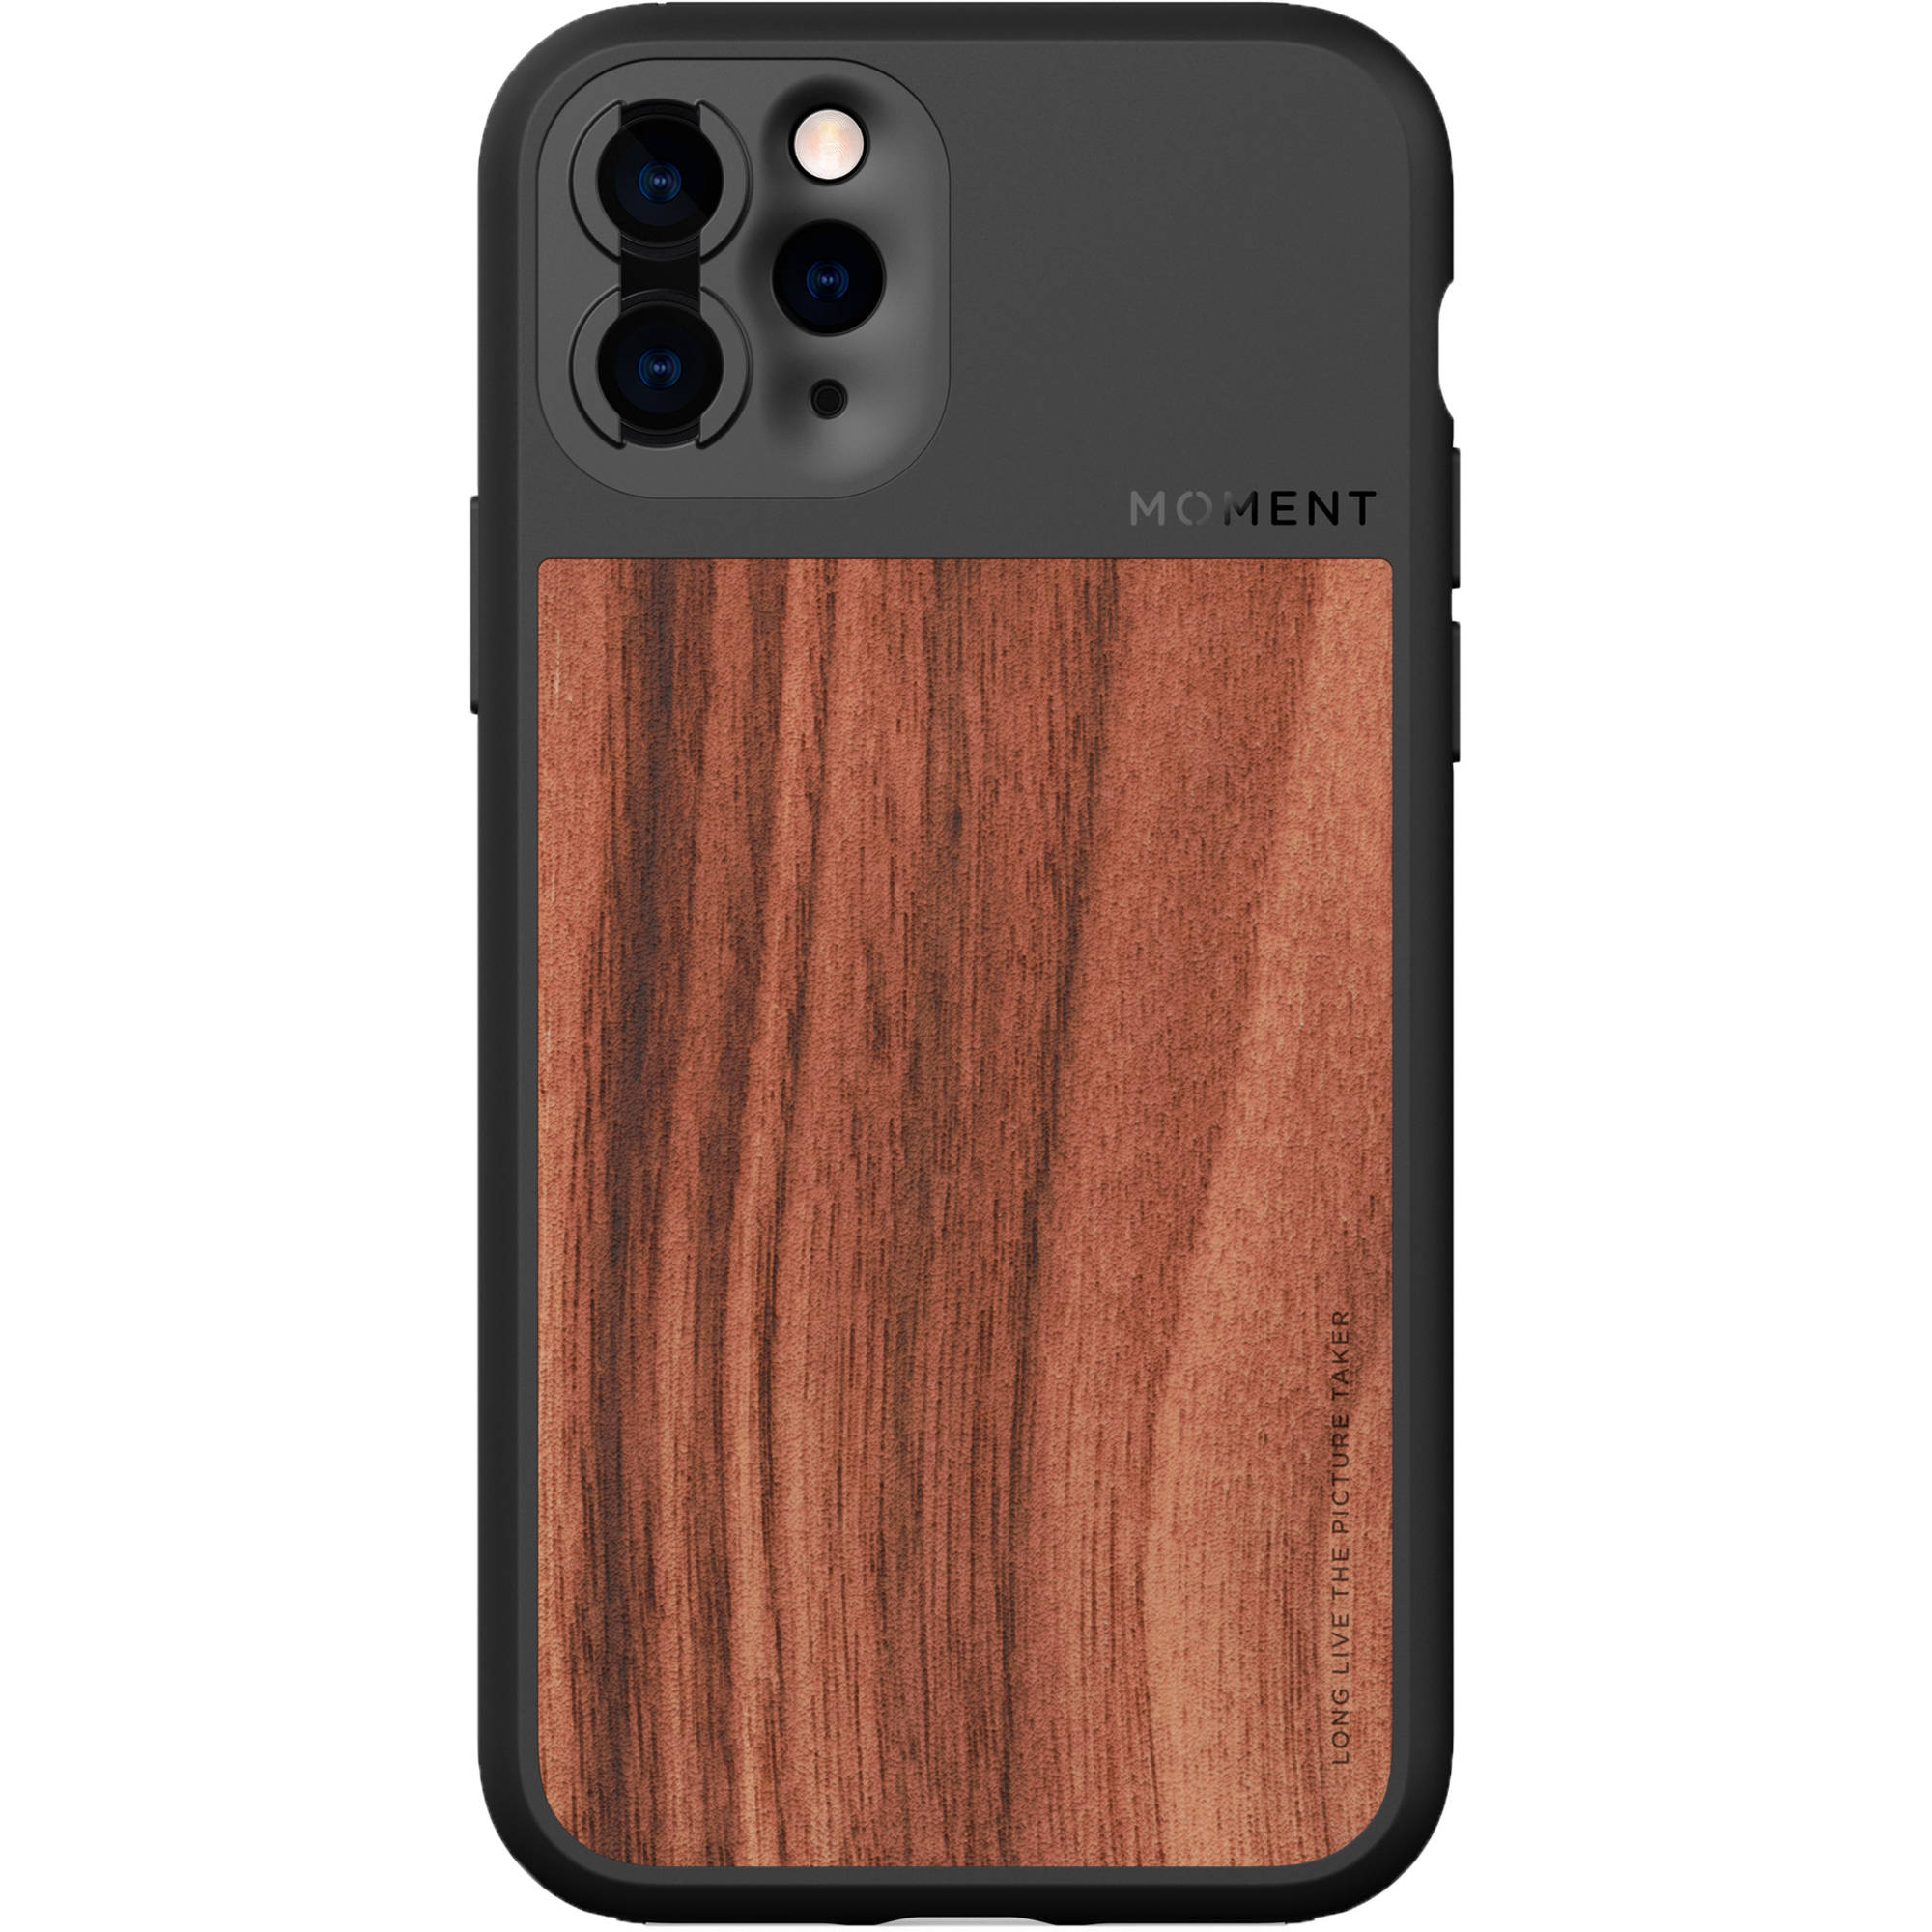 Moment Photo Case for the iPhone 11 Pro Max (Walnut Wood)